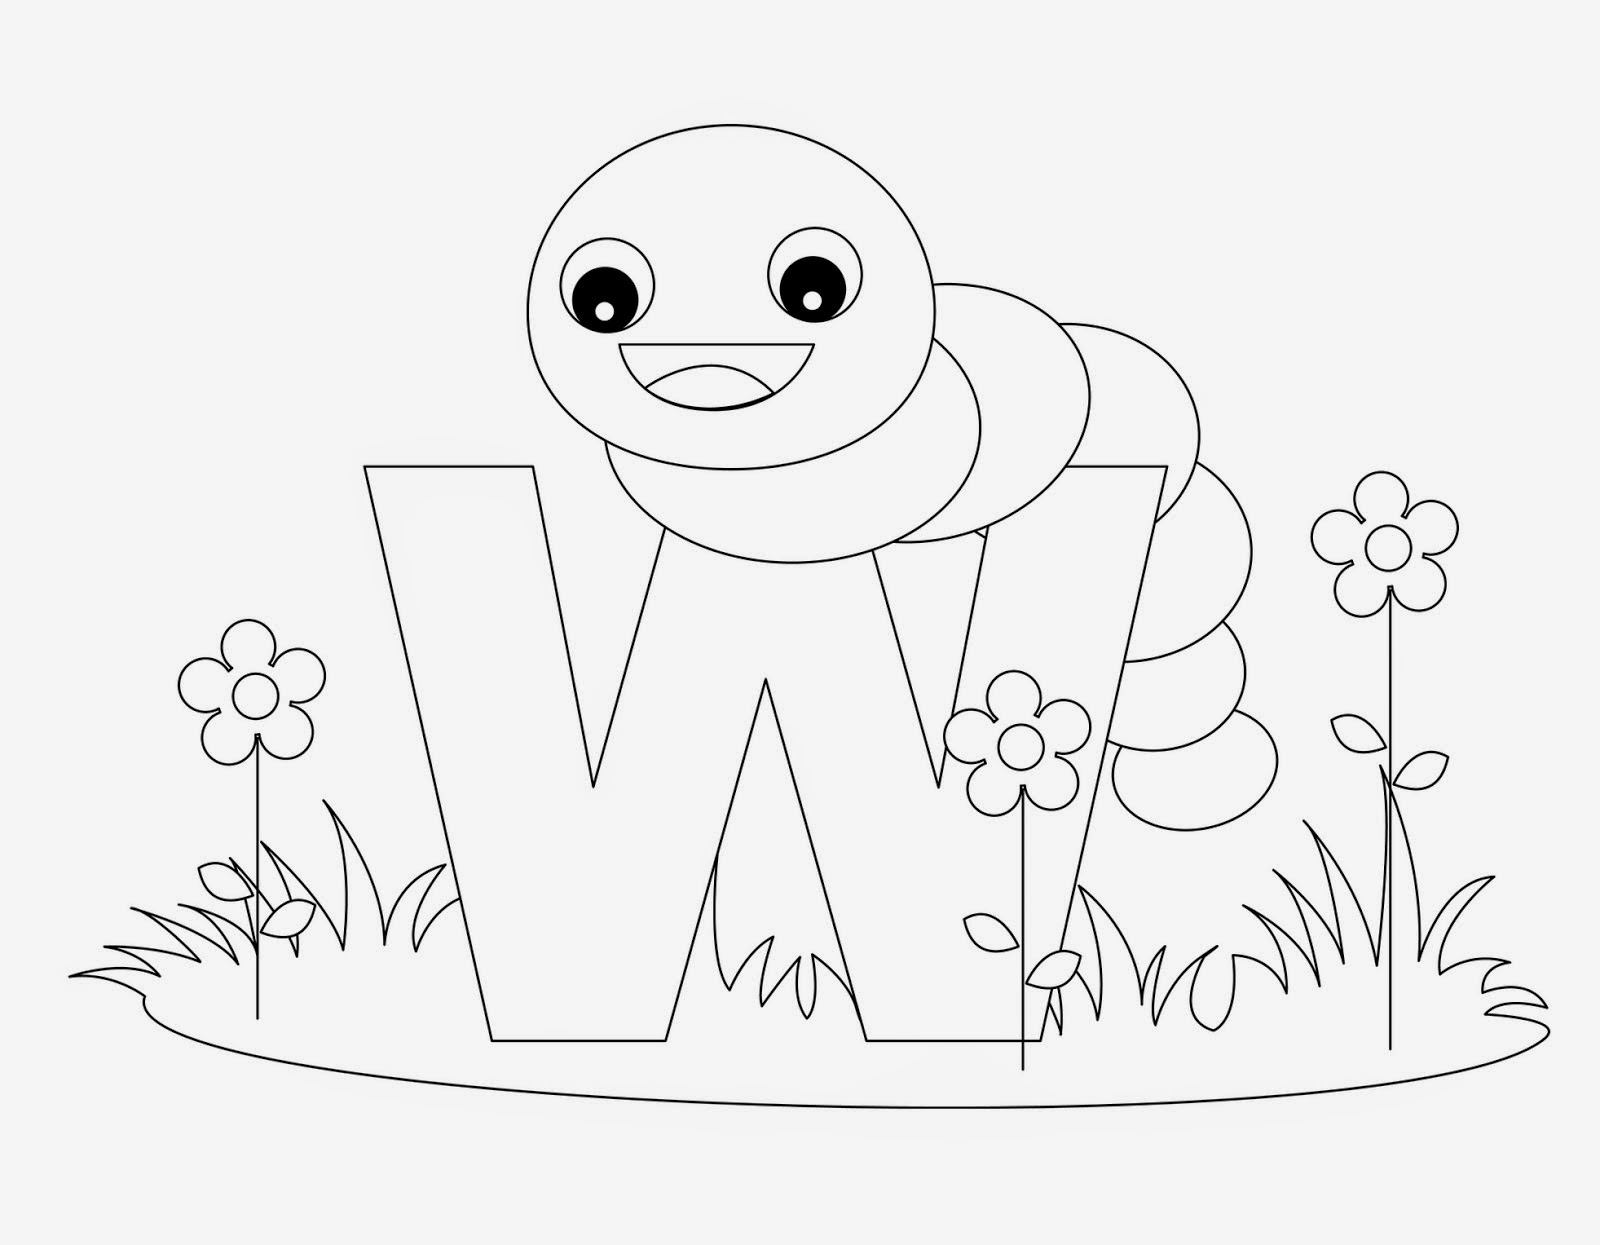 w is for worm coloring page w worm alphabet coloring pages coloring book is coloring w page worm for